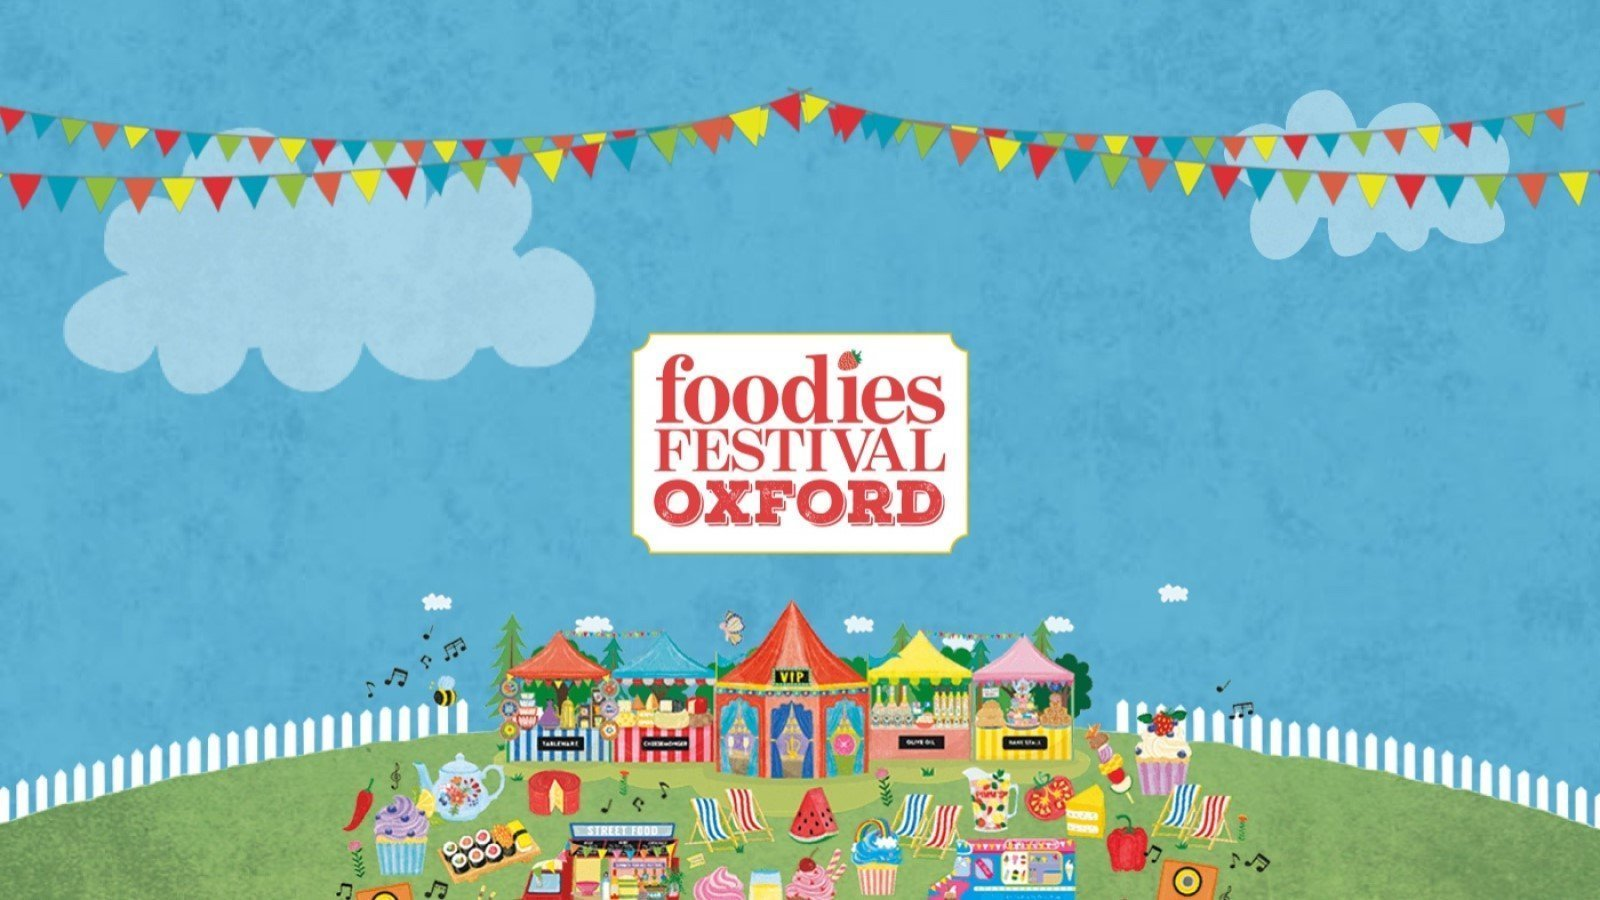 Foodies Festival Oxford 2021